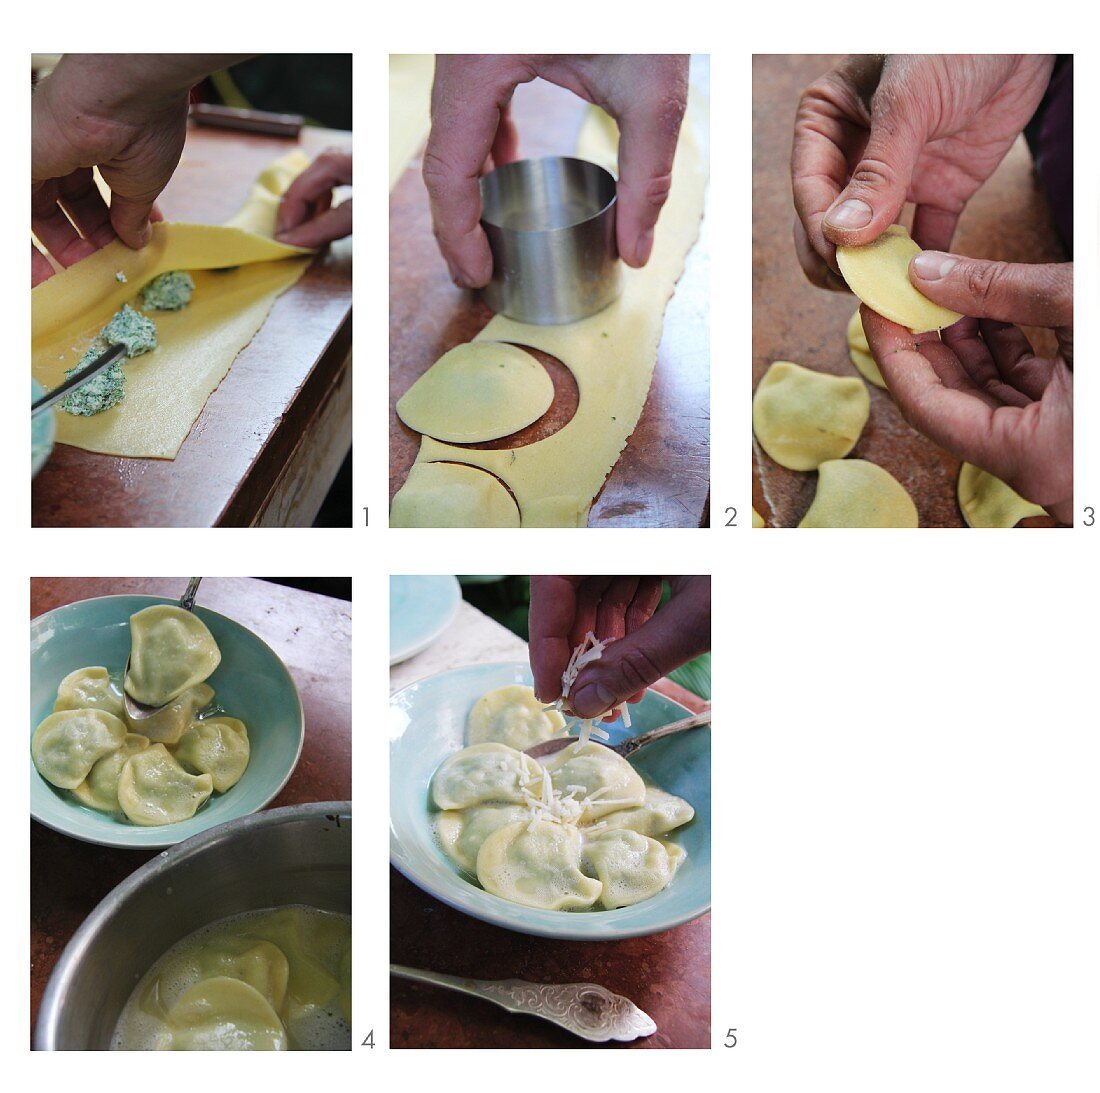 Panzotti with a stinging nettle and ricotta filling being prepared